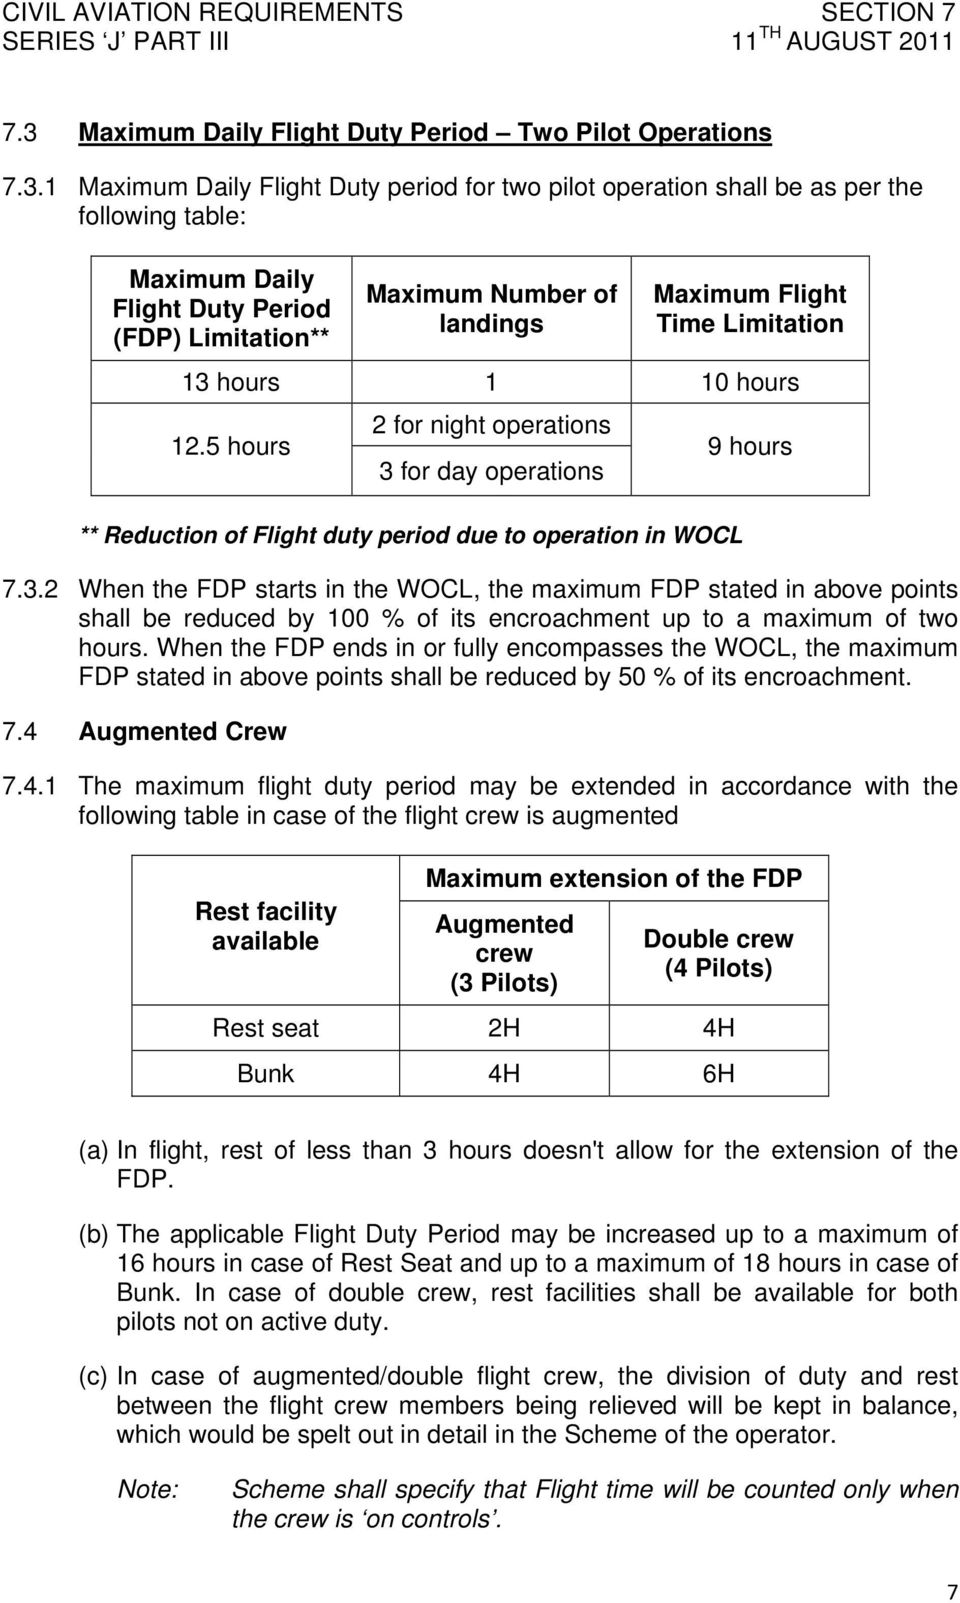 5 hours 2 for night operations 3 for day operations ** Reduction of Flight duty period due to operation in WOCL 9 hours 7.3.2 When the FDP starts in the WOCL, the maximum FDP stated in above points shall be reduced by 100 % of its encroachment up to a maximum of two hours.